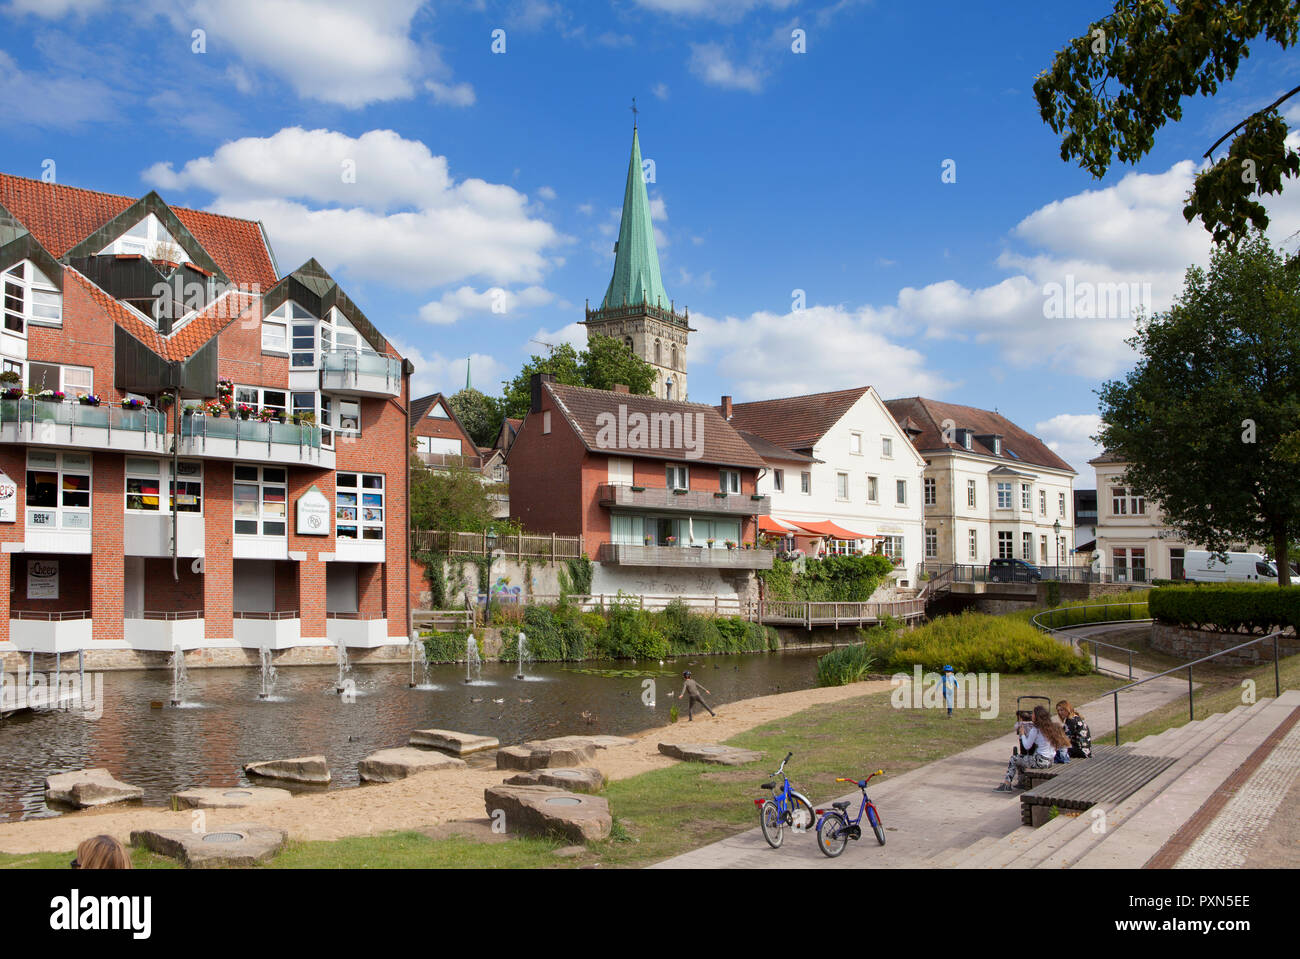 Cityscape of Lüdinghausen, Münsterland, North Rhine-Westphalia, Germany, Europe - Stock Image